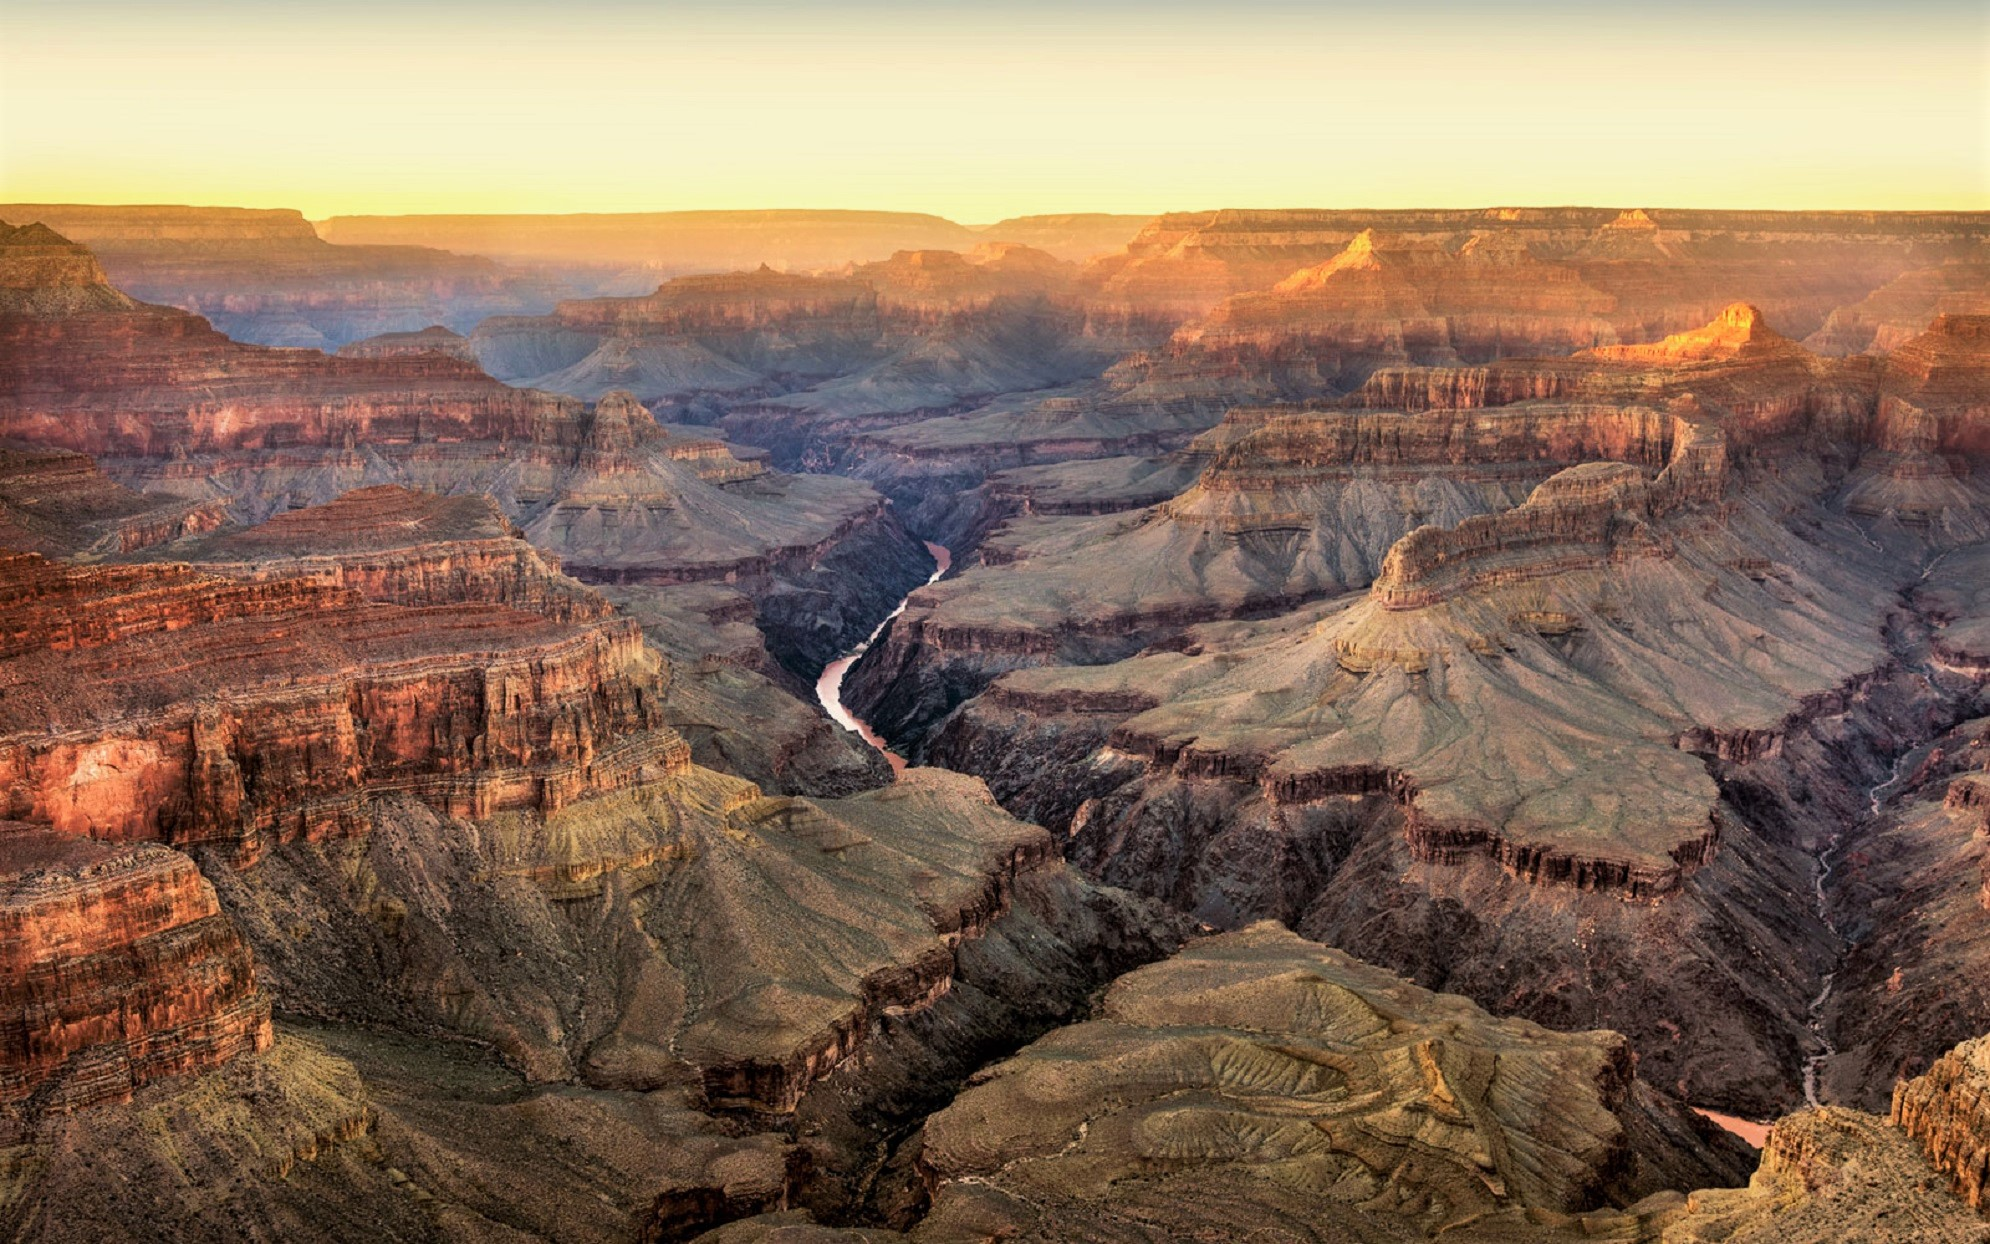 You Can Visit Every National Park for Free on These 5 Days in 2020